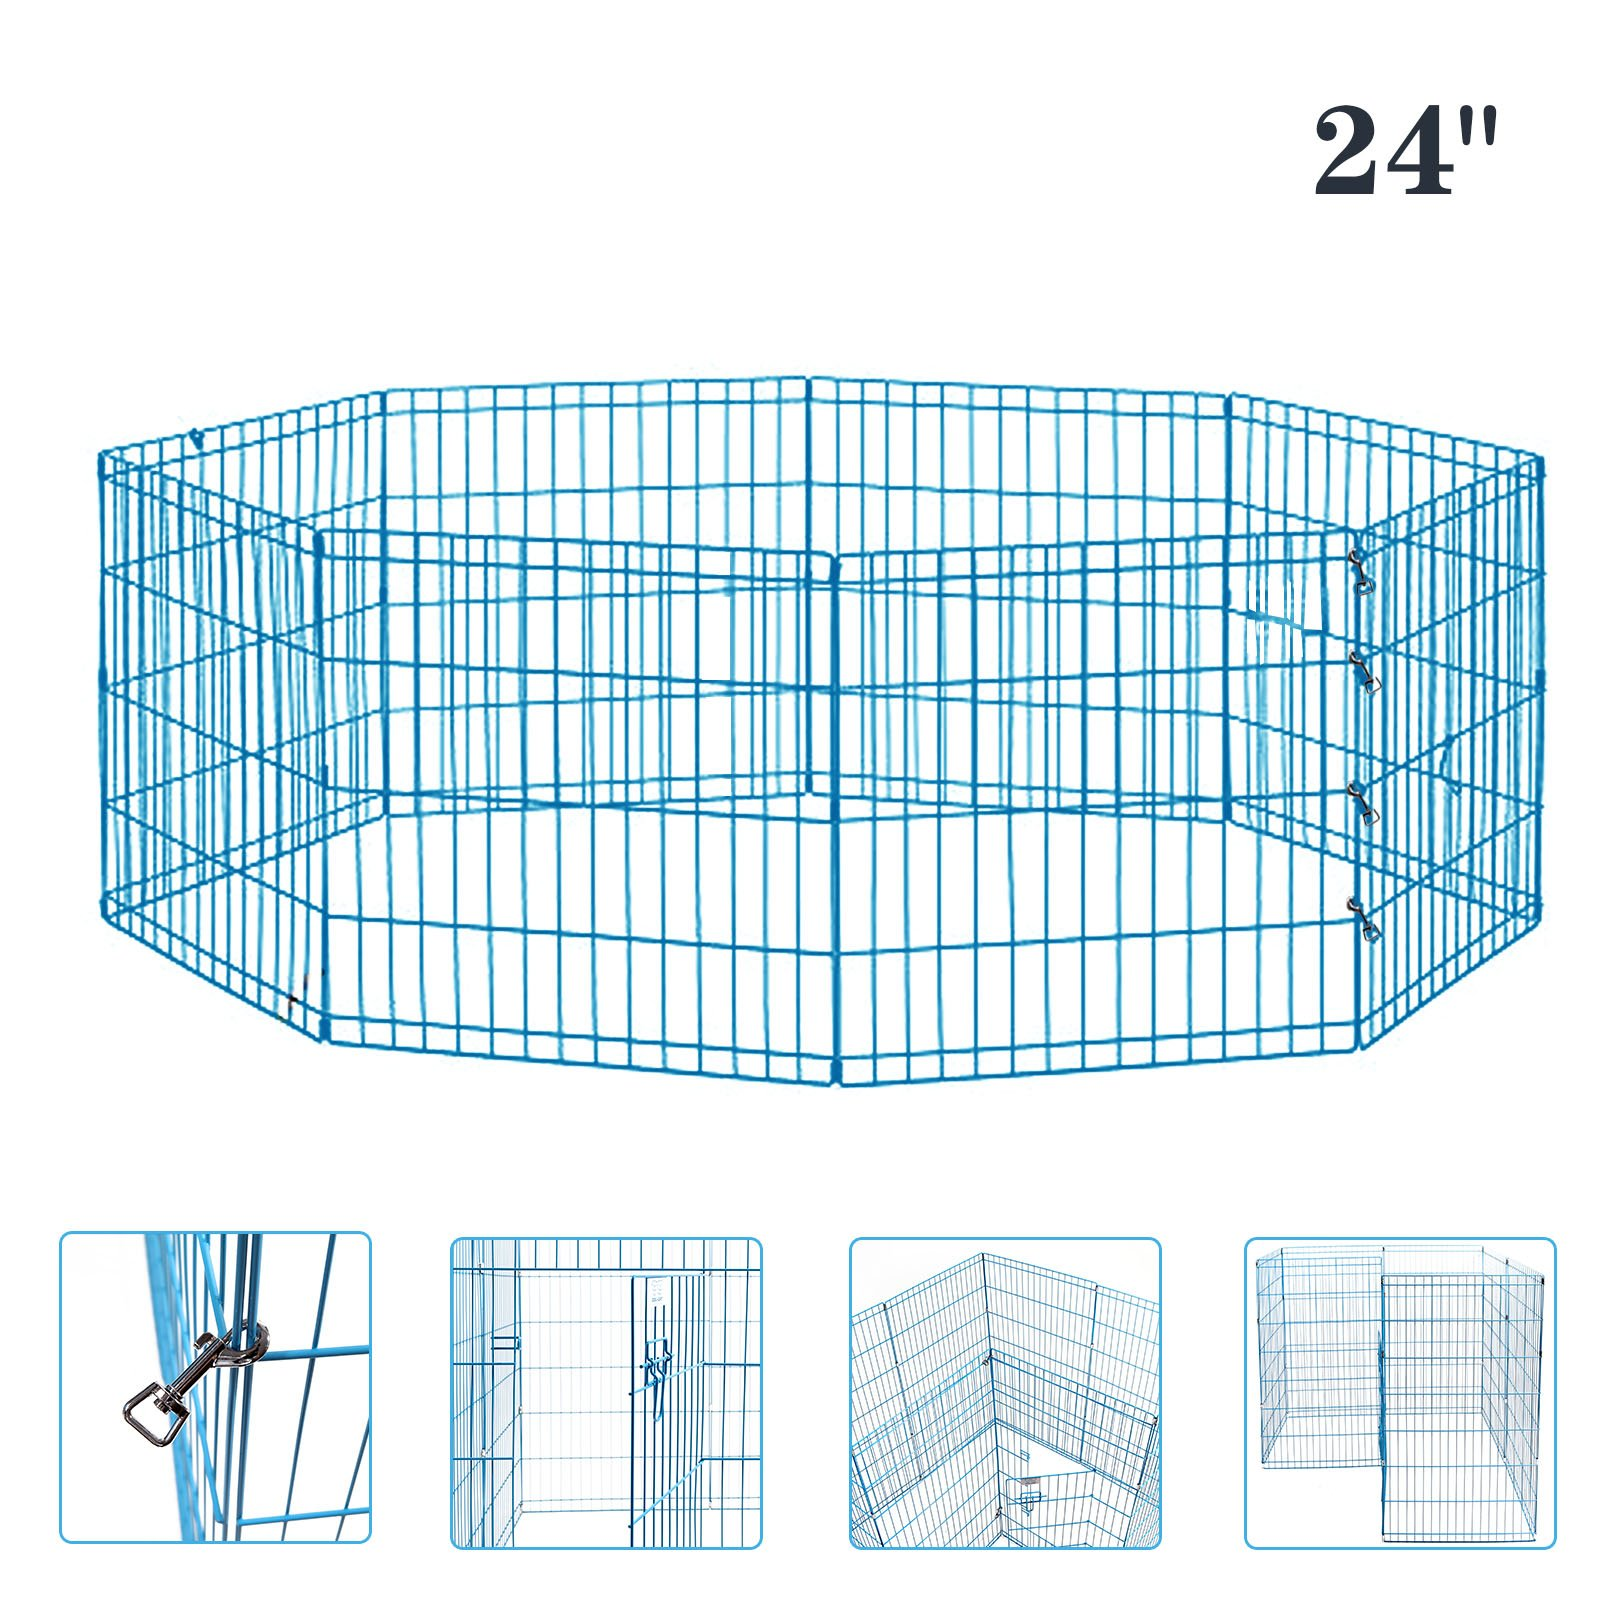 Idealchoiceproduct Pet Playpen Pet Pen Folding Wire Dog Exercise Pen Pet Fence Yard Fence 8 Panel Cage 24-42 Inch-Blue Color